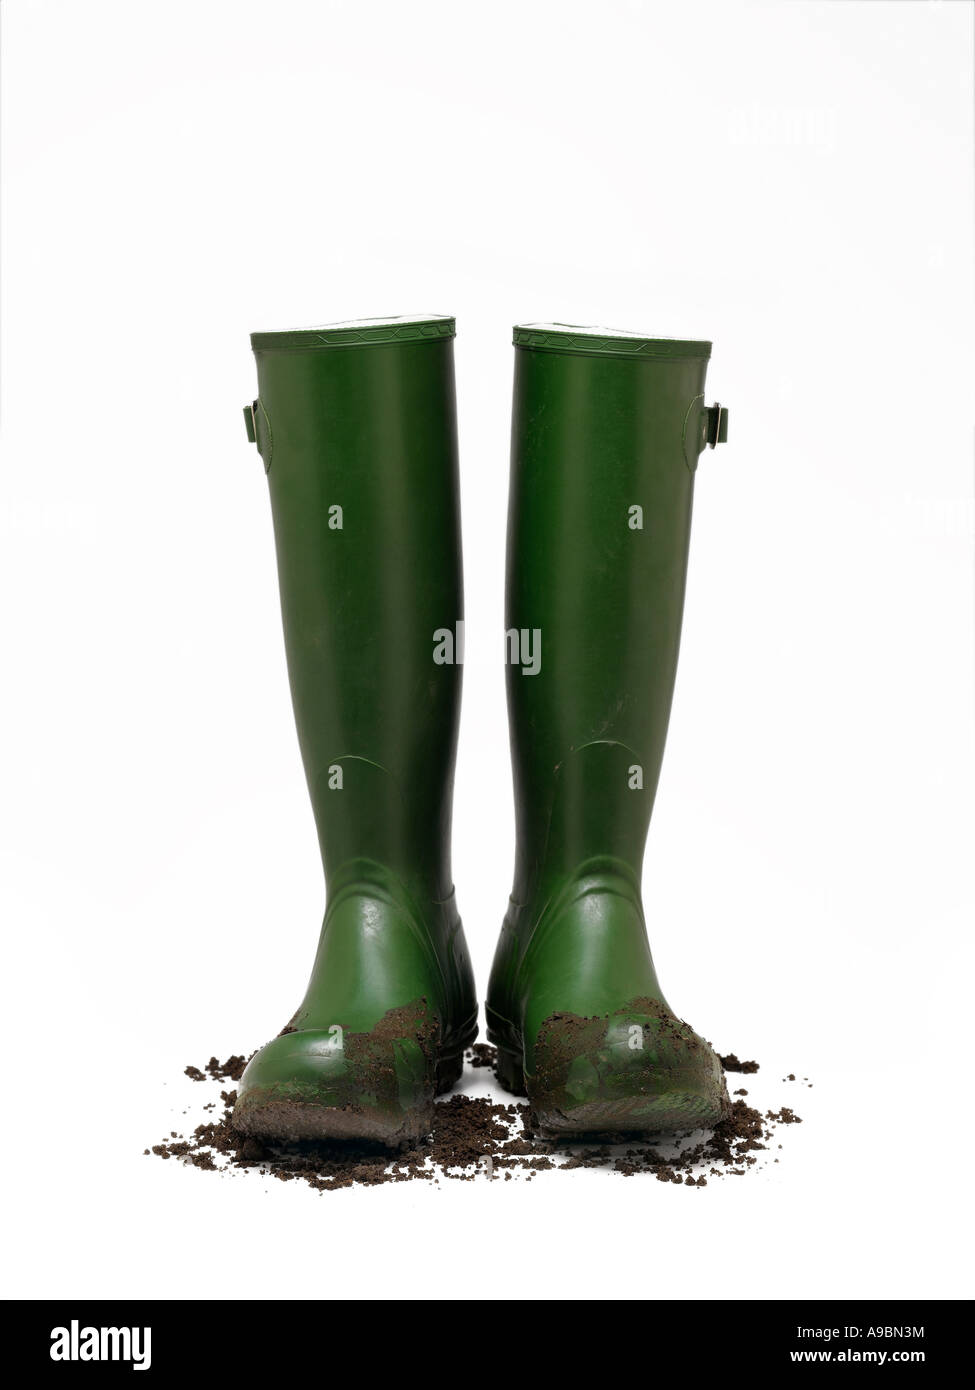 wellington boots - Stock Image